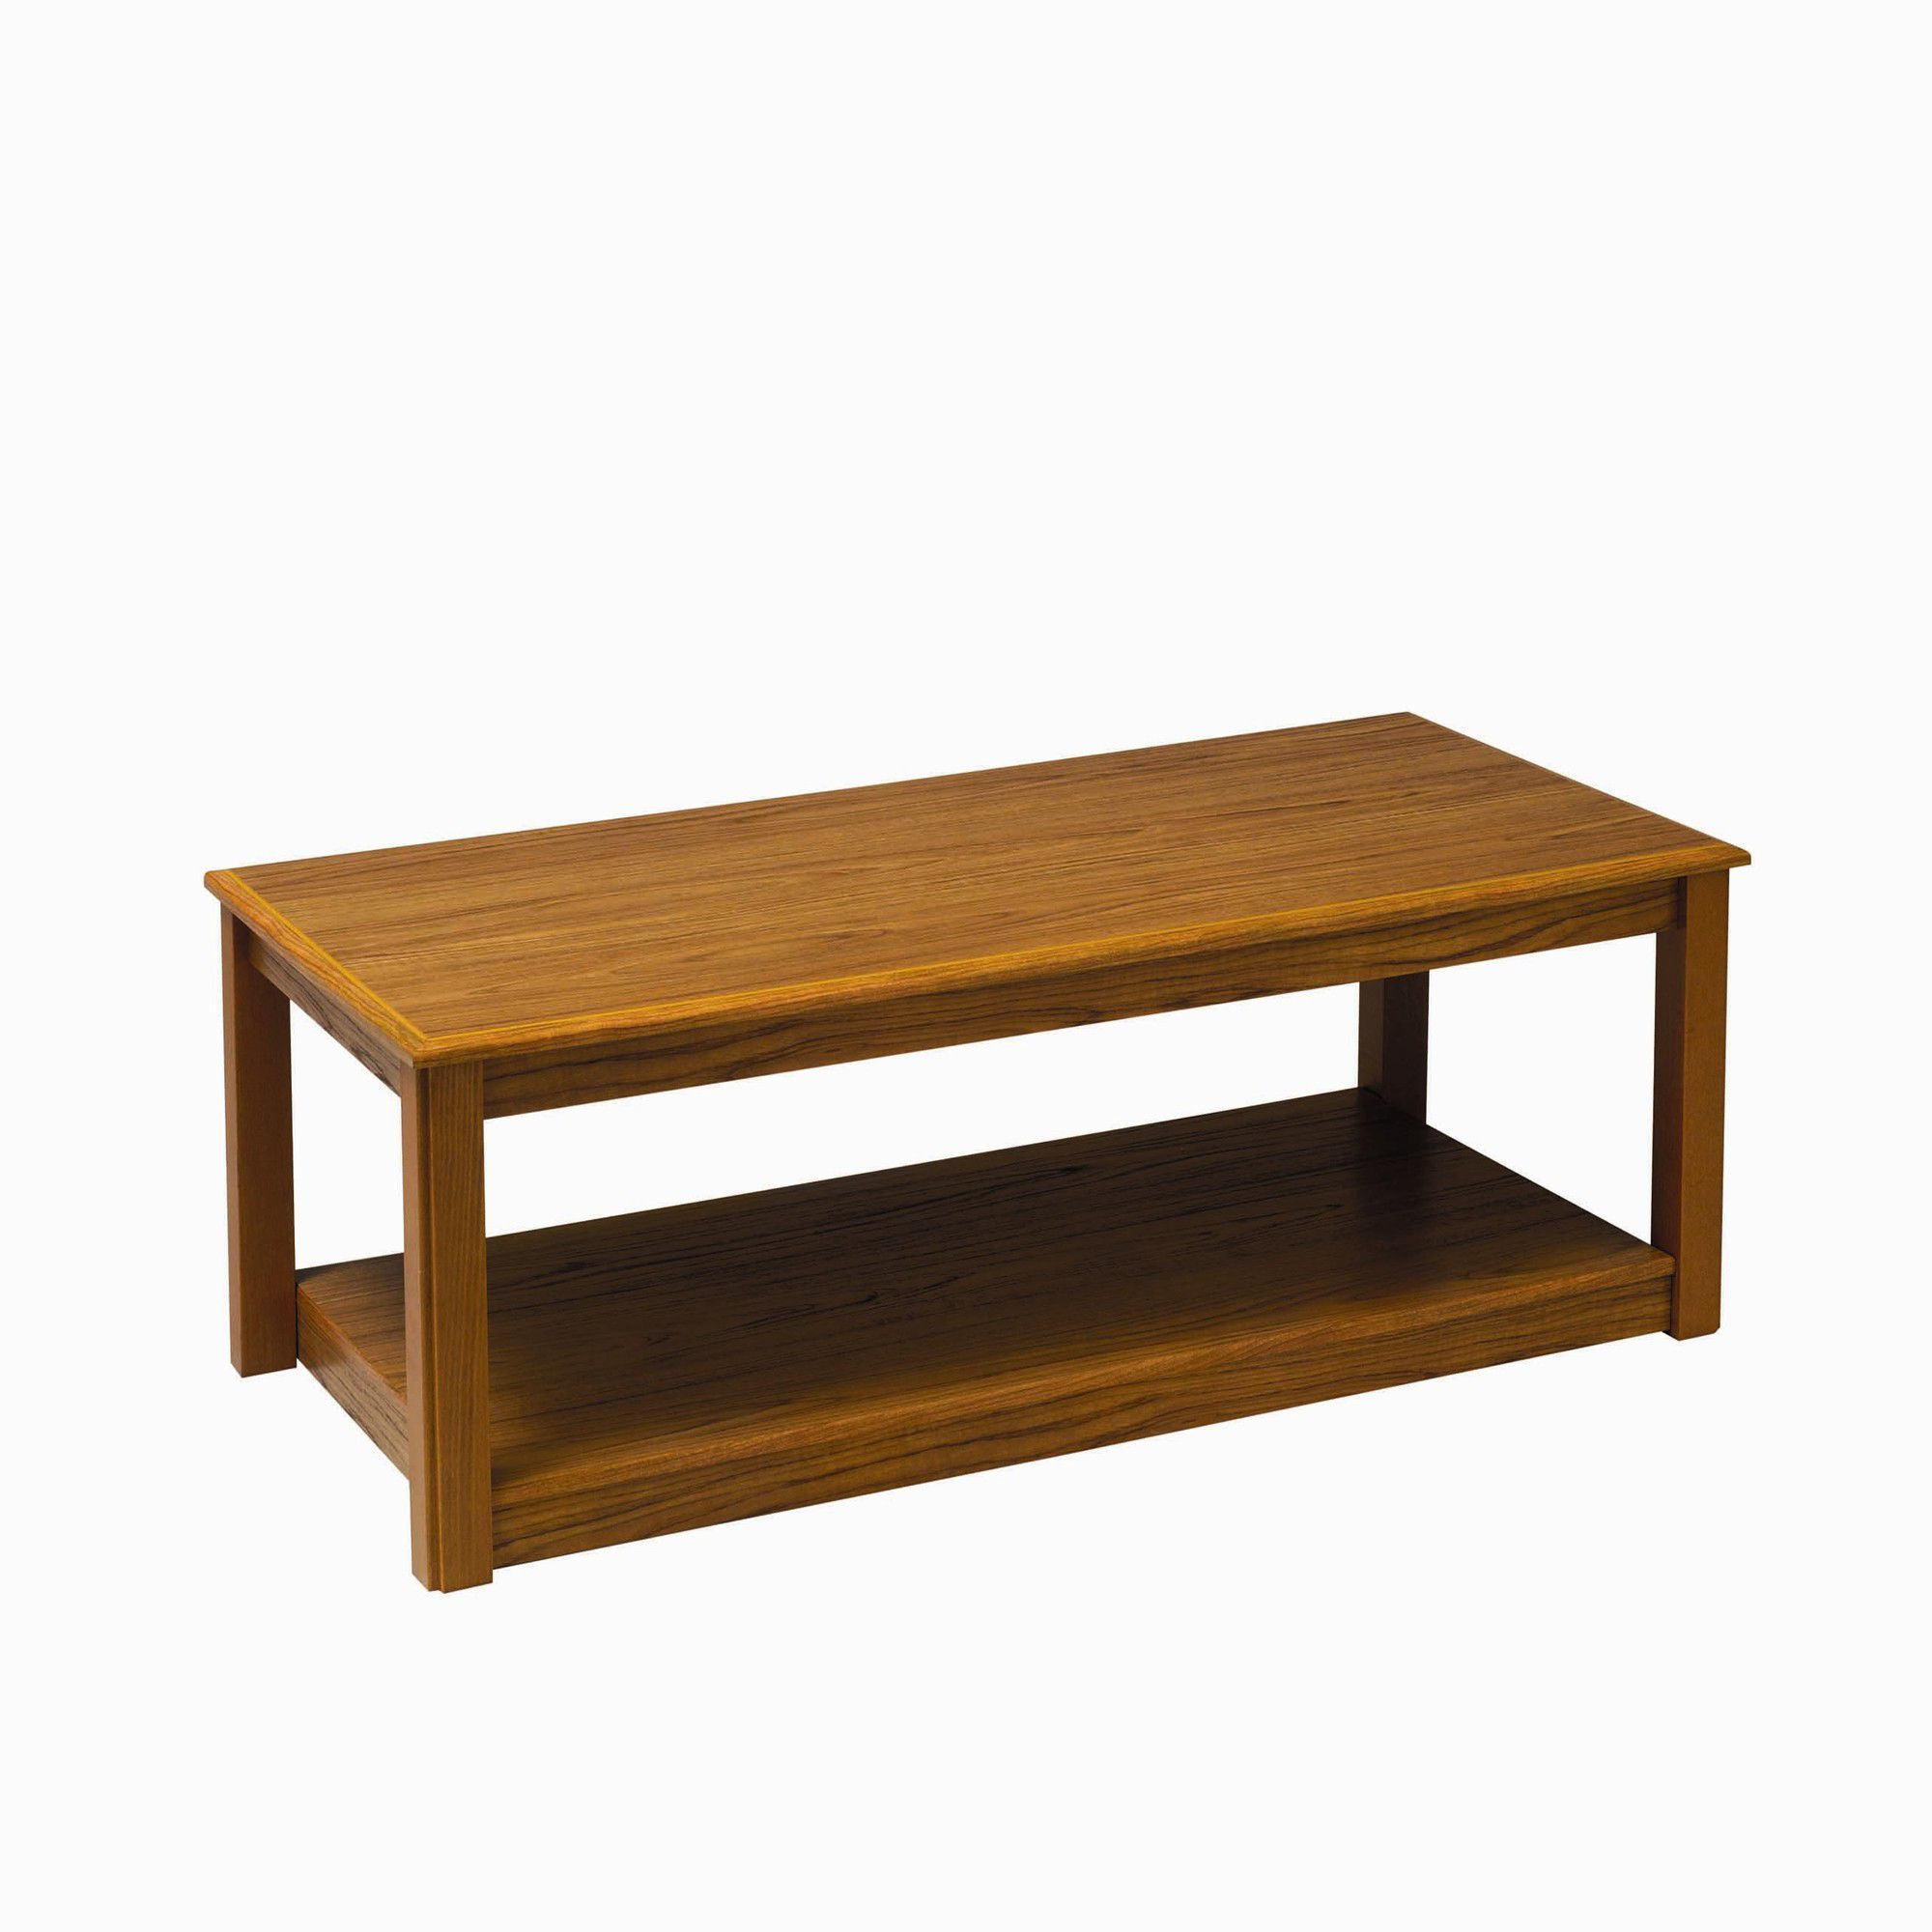 Caxton Tennyson Coffee Table in Teak at Tesco Direct